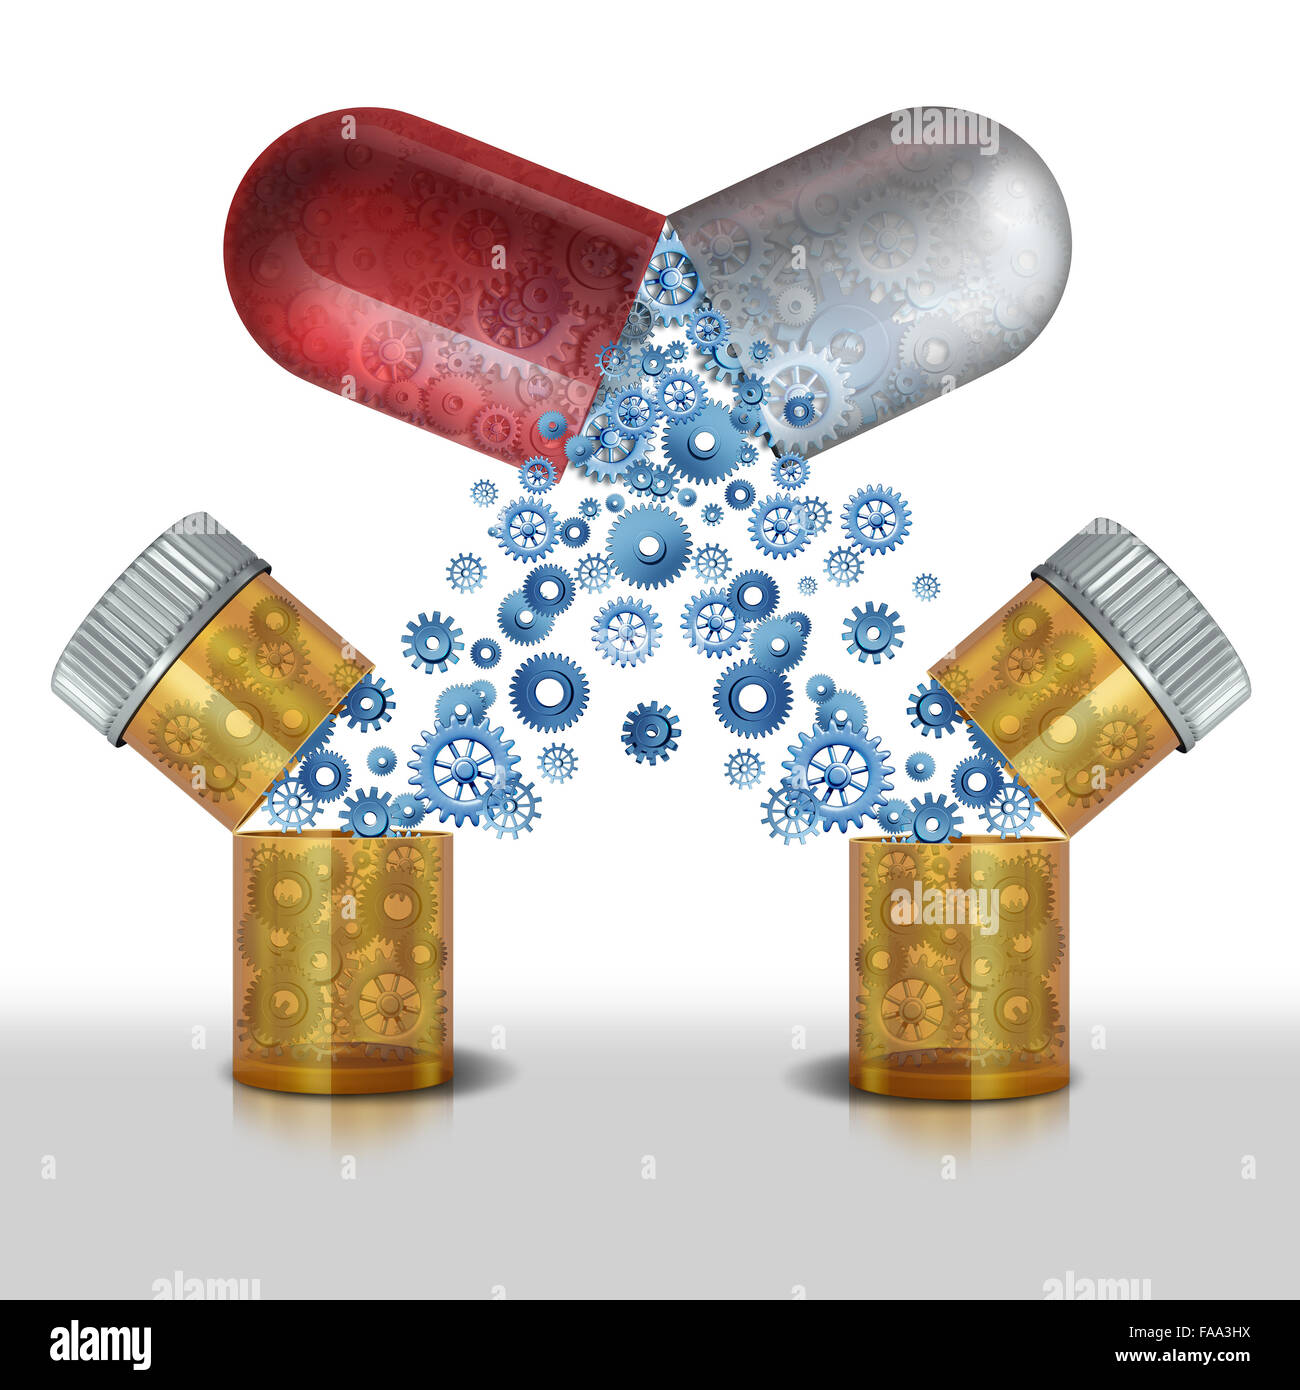 Medicine interaction and multipurpose drug or safety concerns of combining pharmaceutical drug or medicinal supplements - Stock Image